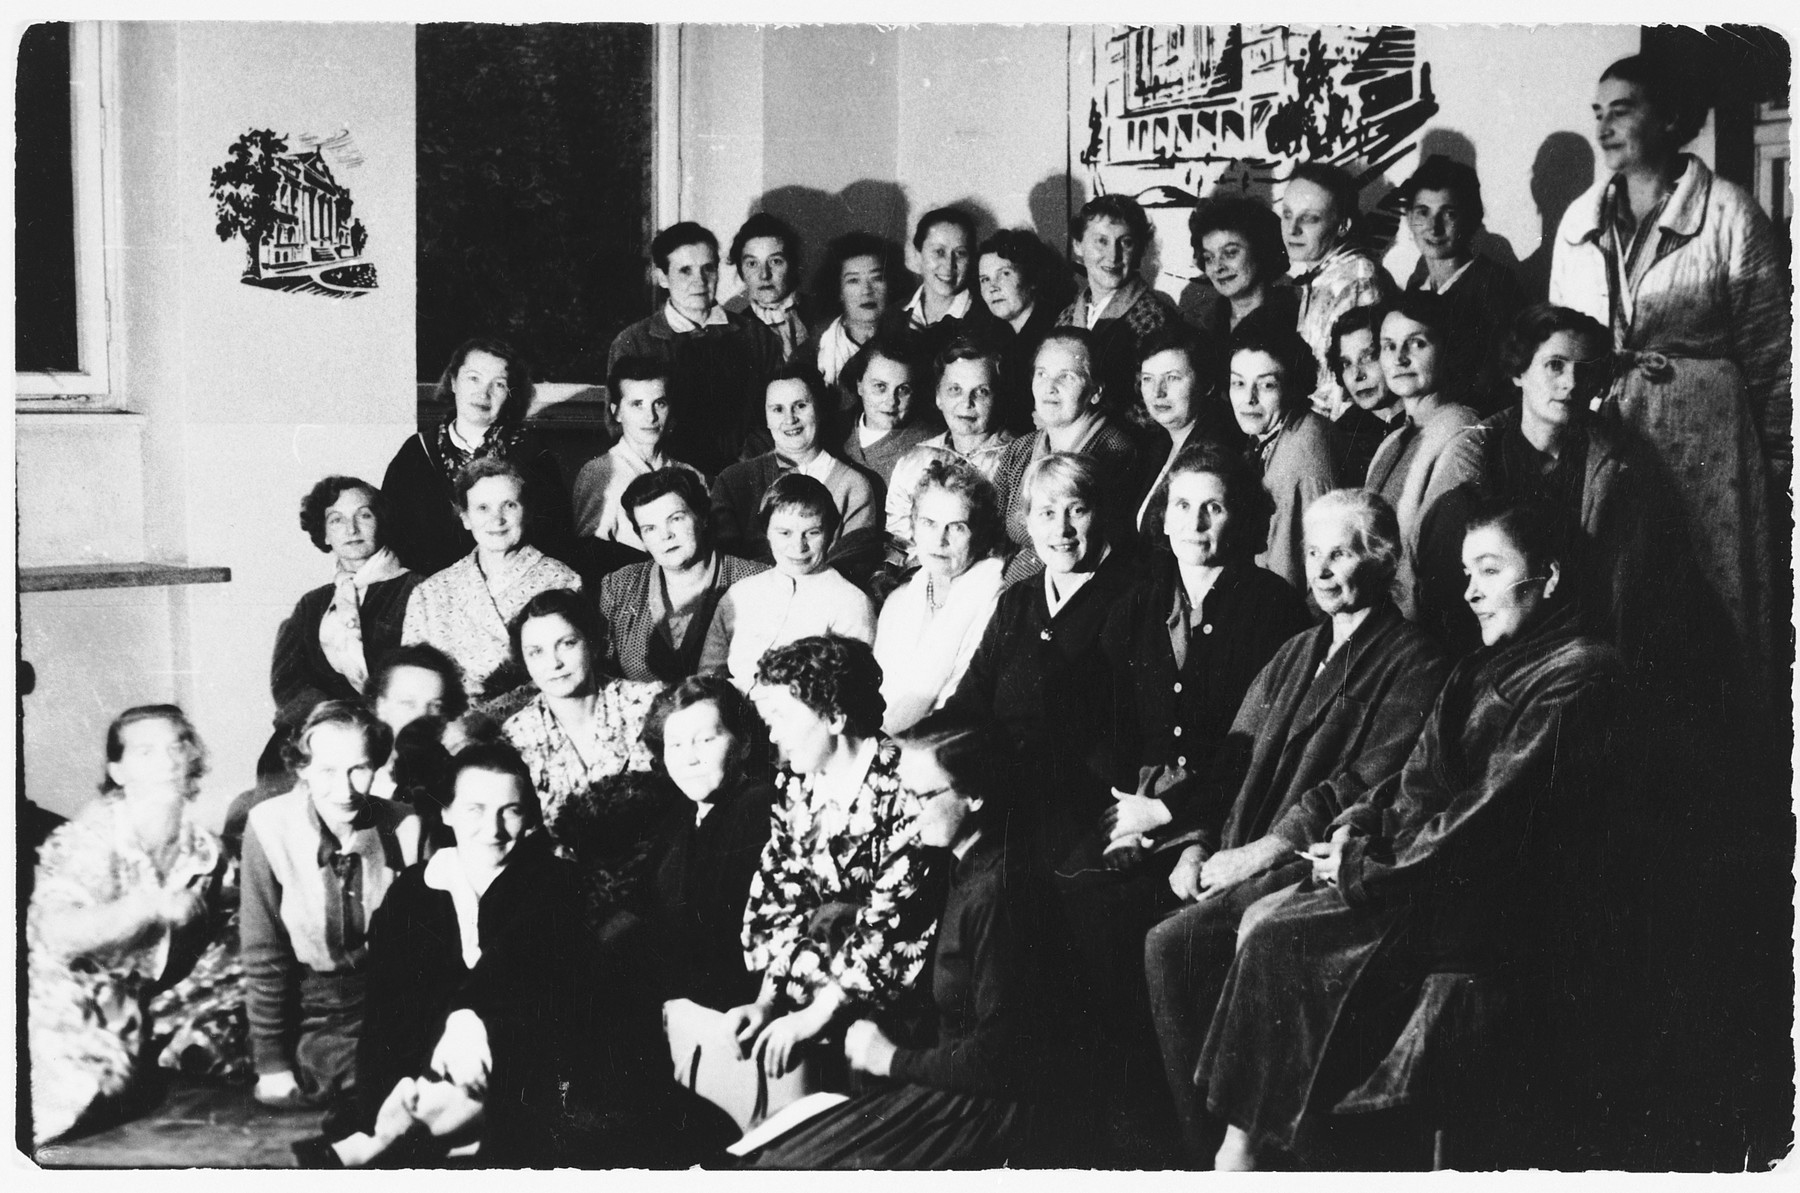 Group portrait of Polish female survivors of medical experimentations at the Ravensbrueck concentration camp in a medical clinic in Warsaw, where they are undergoing examinations by Polish physicians and Dr. Hitzig from the United States.